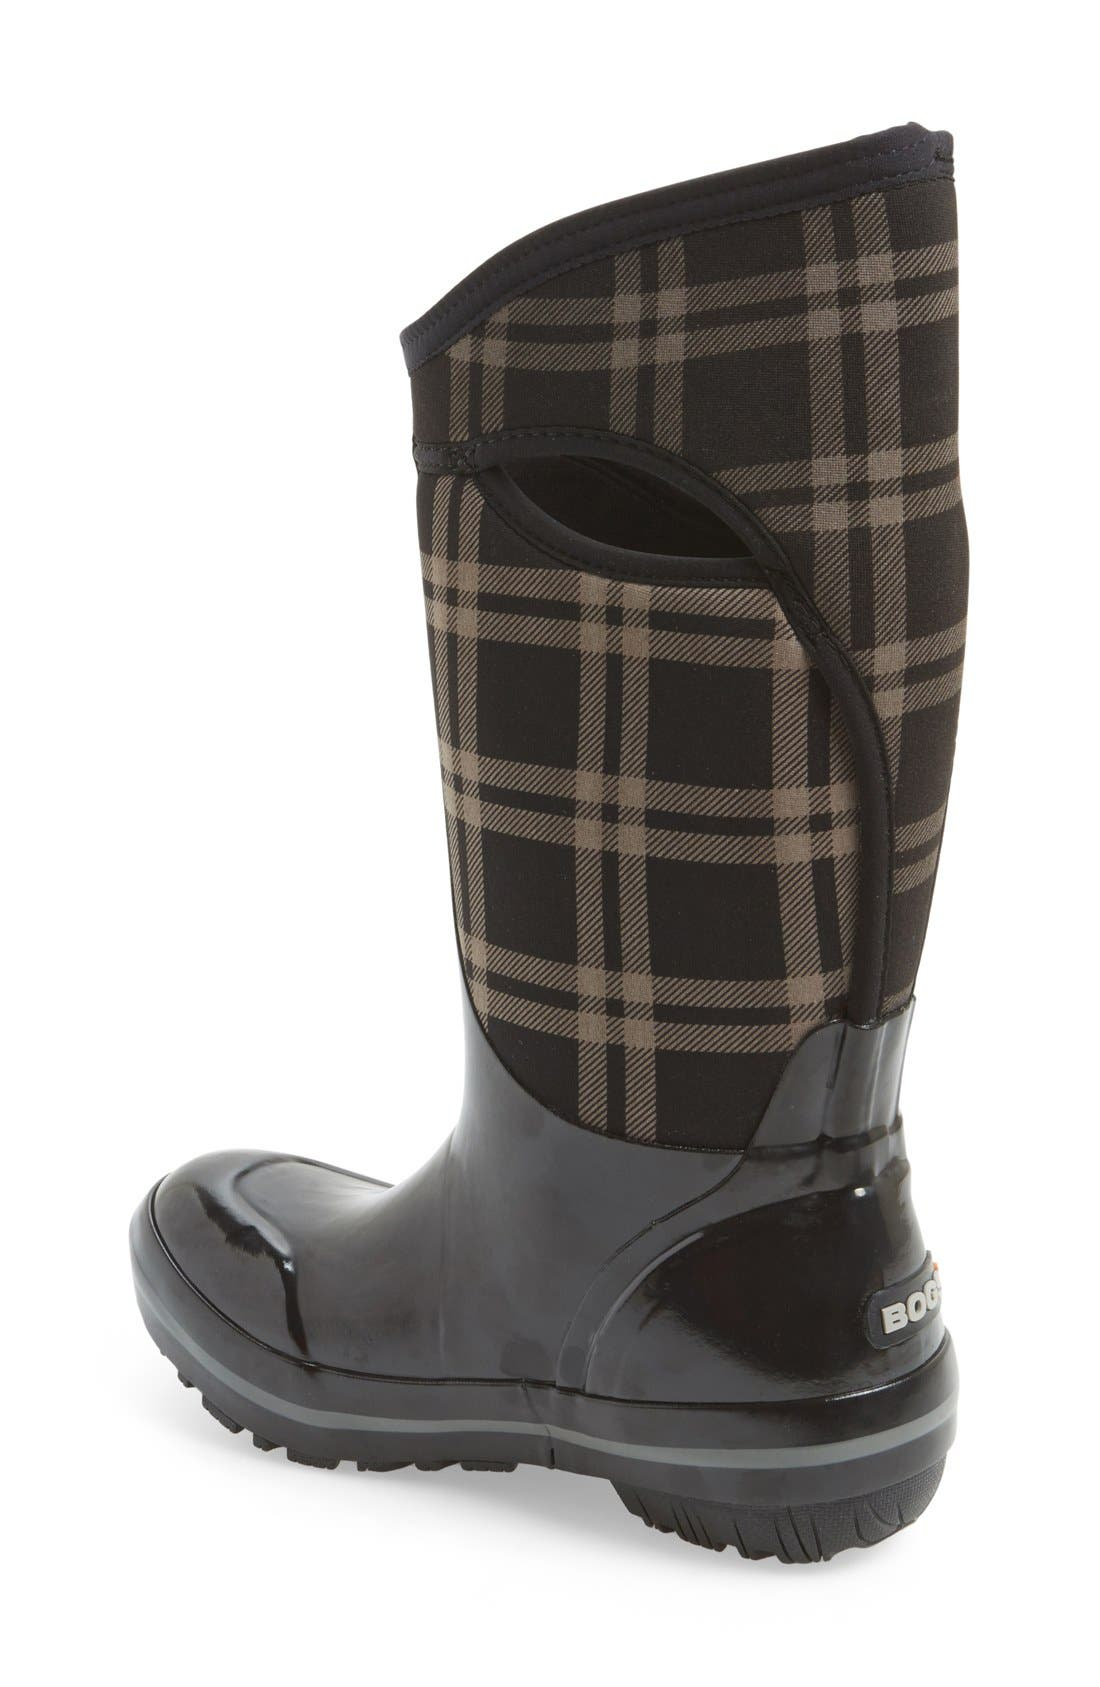 Alternate Image 2  - Bogs 'Plimsoll' Waterproof Boot (Women)